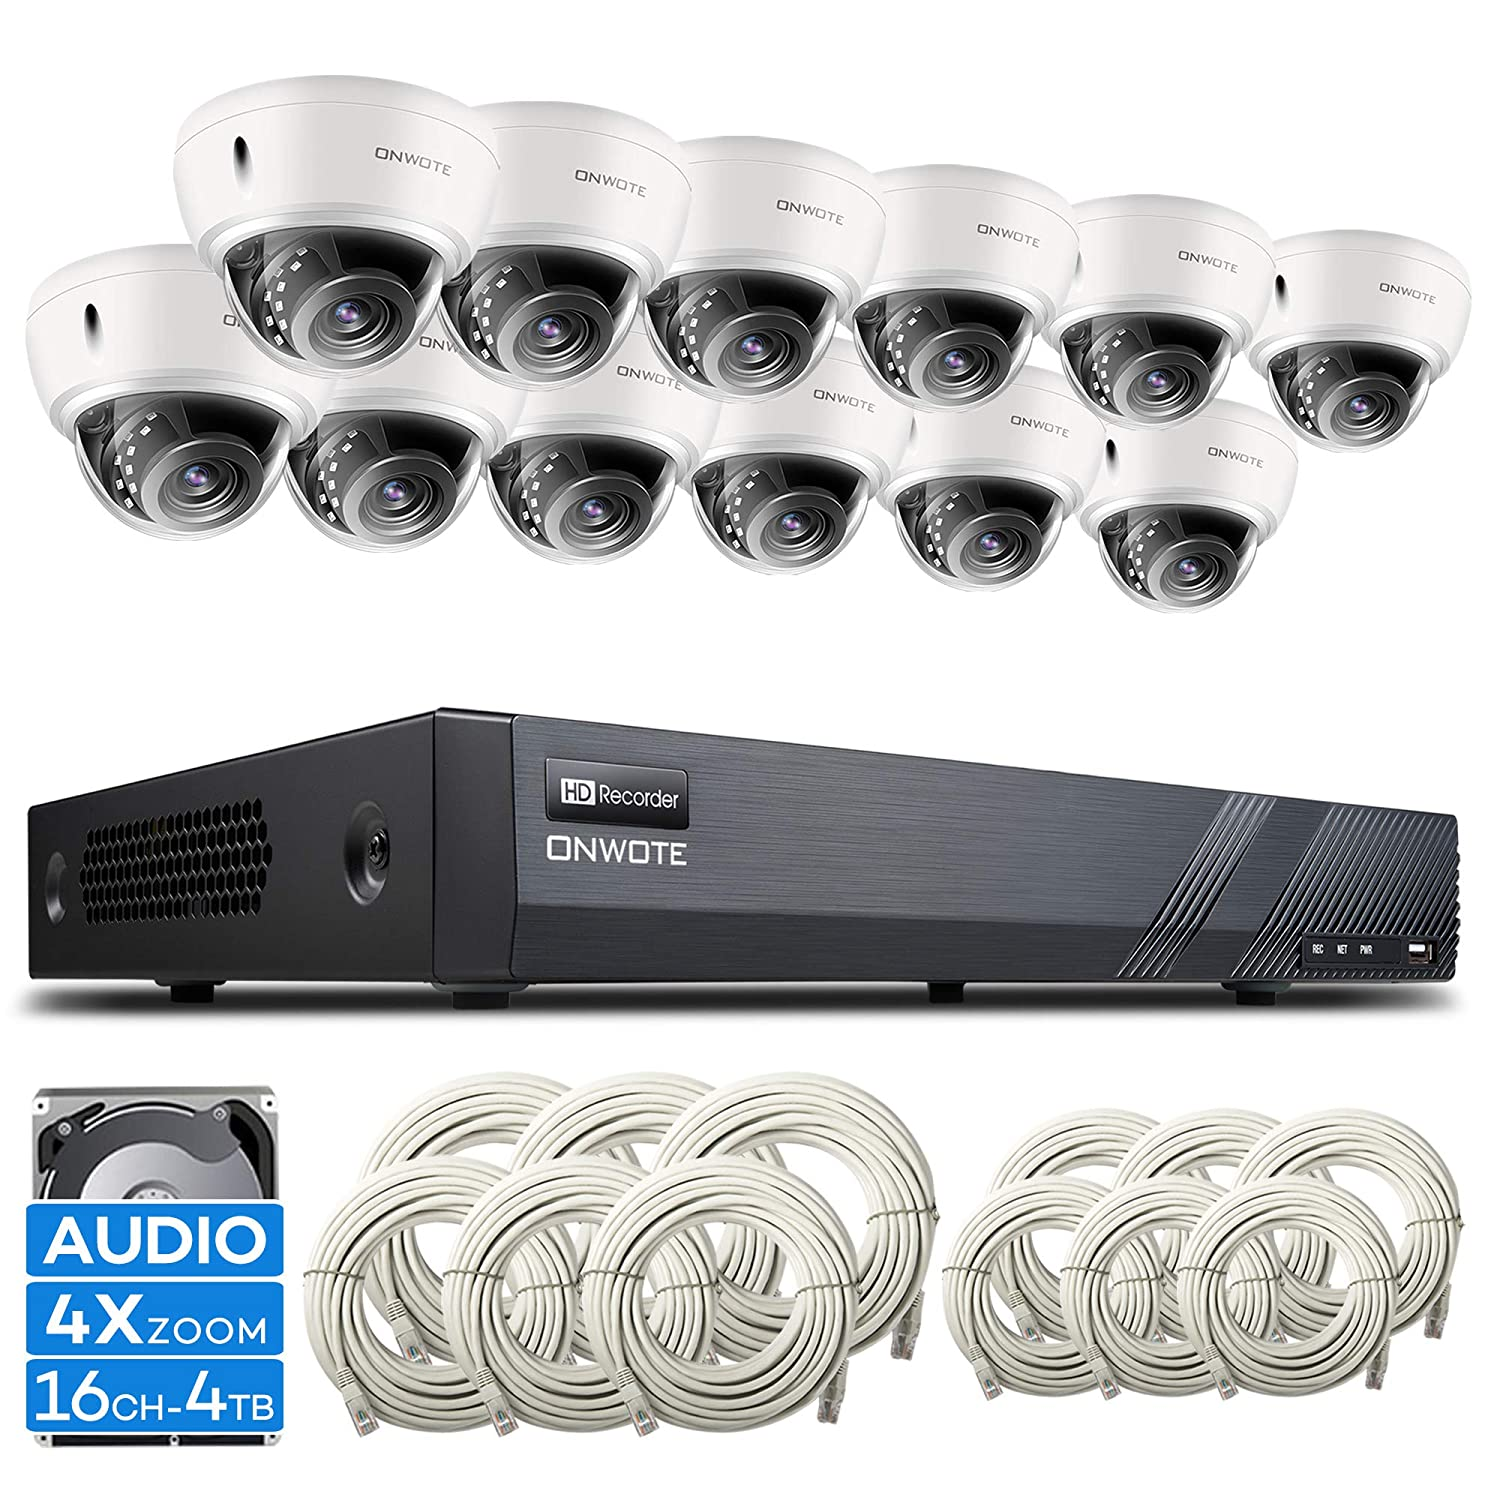 Expandable Audio ONWOTE 16 Channel 4K H.265 NVR 12 4X Optical Zoom Autofocus Audio PoE Security Camera System 4TB HDD, Vandalproof Dome, 2.8-8mm Motorized Lens Outdoor 5MP IP PoE Camera, 100ft IR